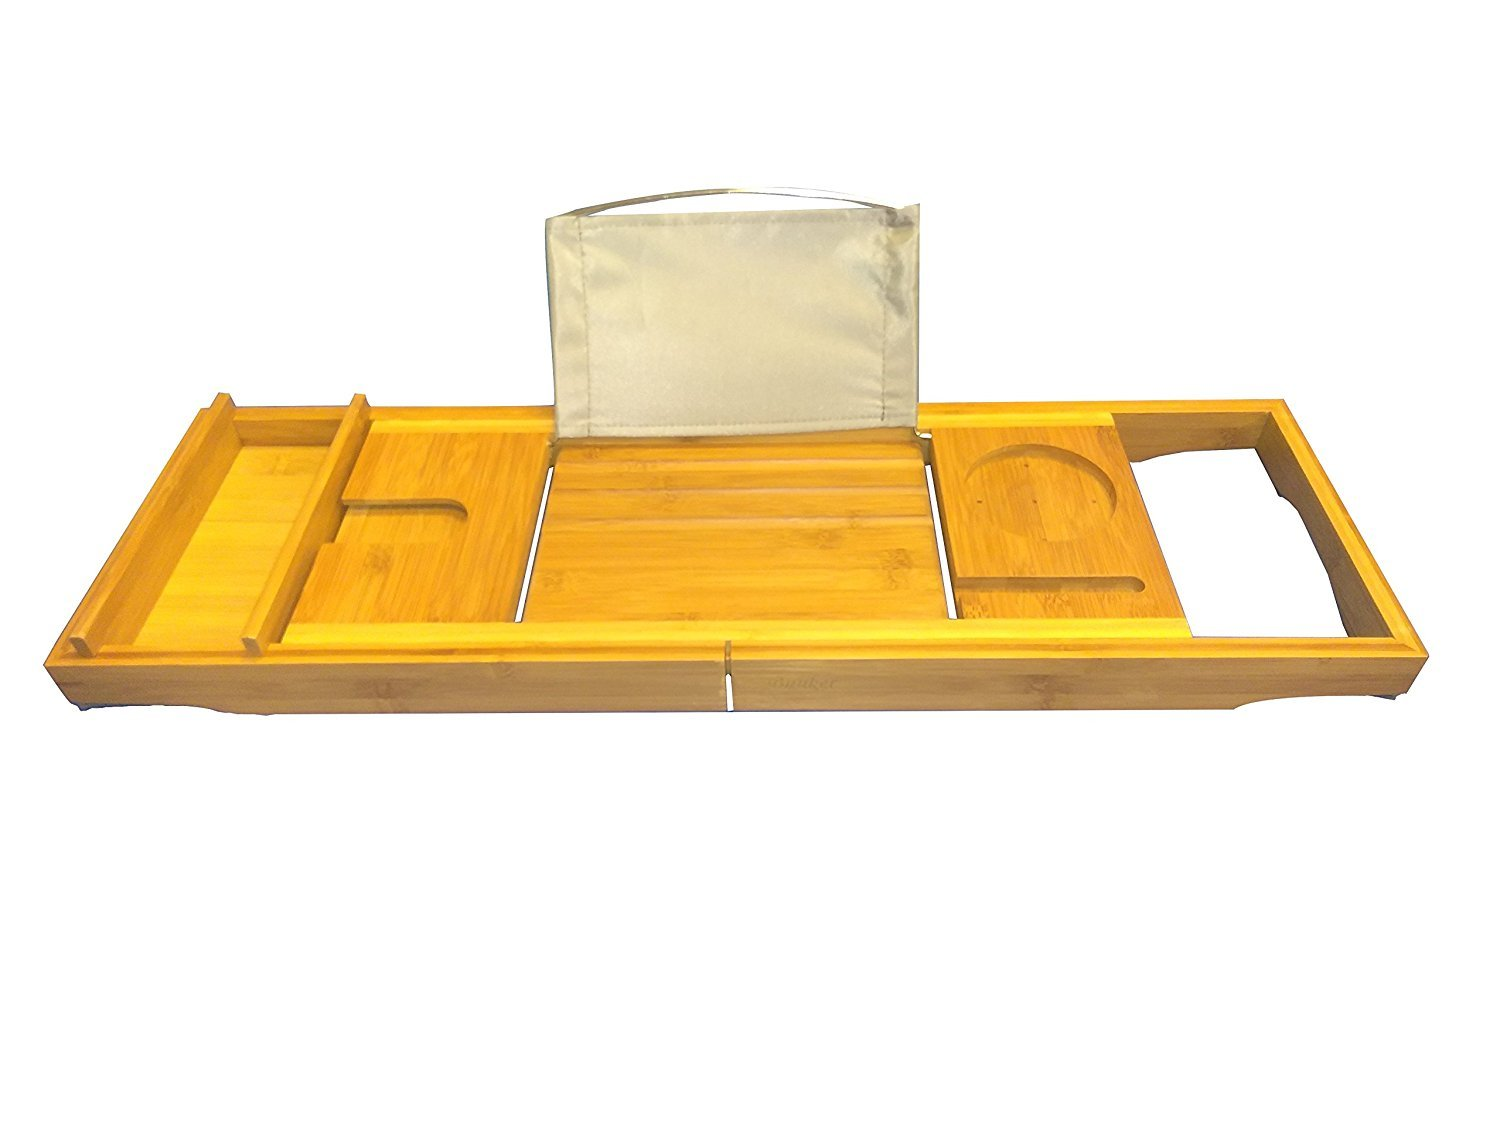 Luxurious 100% Bamboo Bathtub Caddy   Sturdy extendable sides   Bath Tray   Relax and enjoy with 2 built in drink holders and adjustable book rest   Smart phone Cutout   Extra Side Tray   Perfect Gift BUNKER001